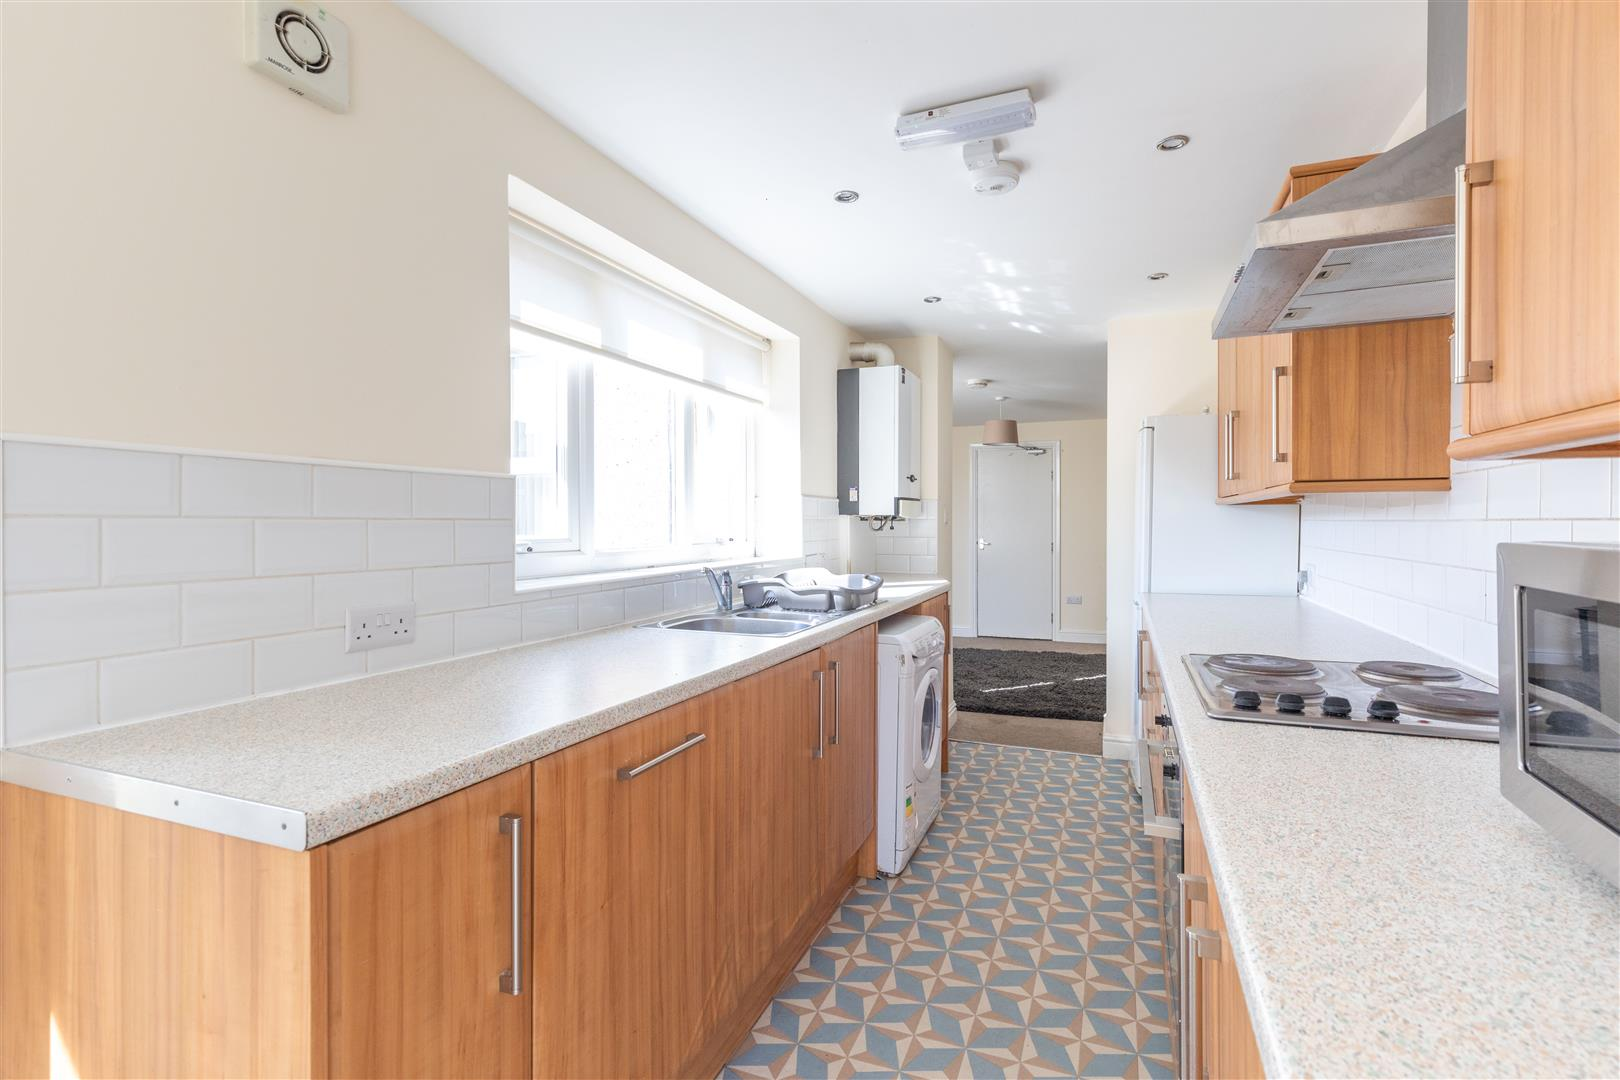 4 bed to rent in Newcastle Upon Tyne, NE6 5AR - Property Image 1